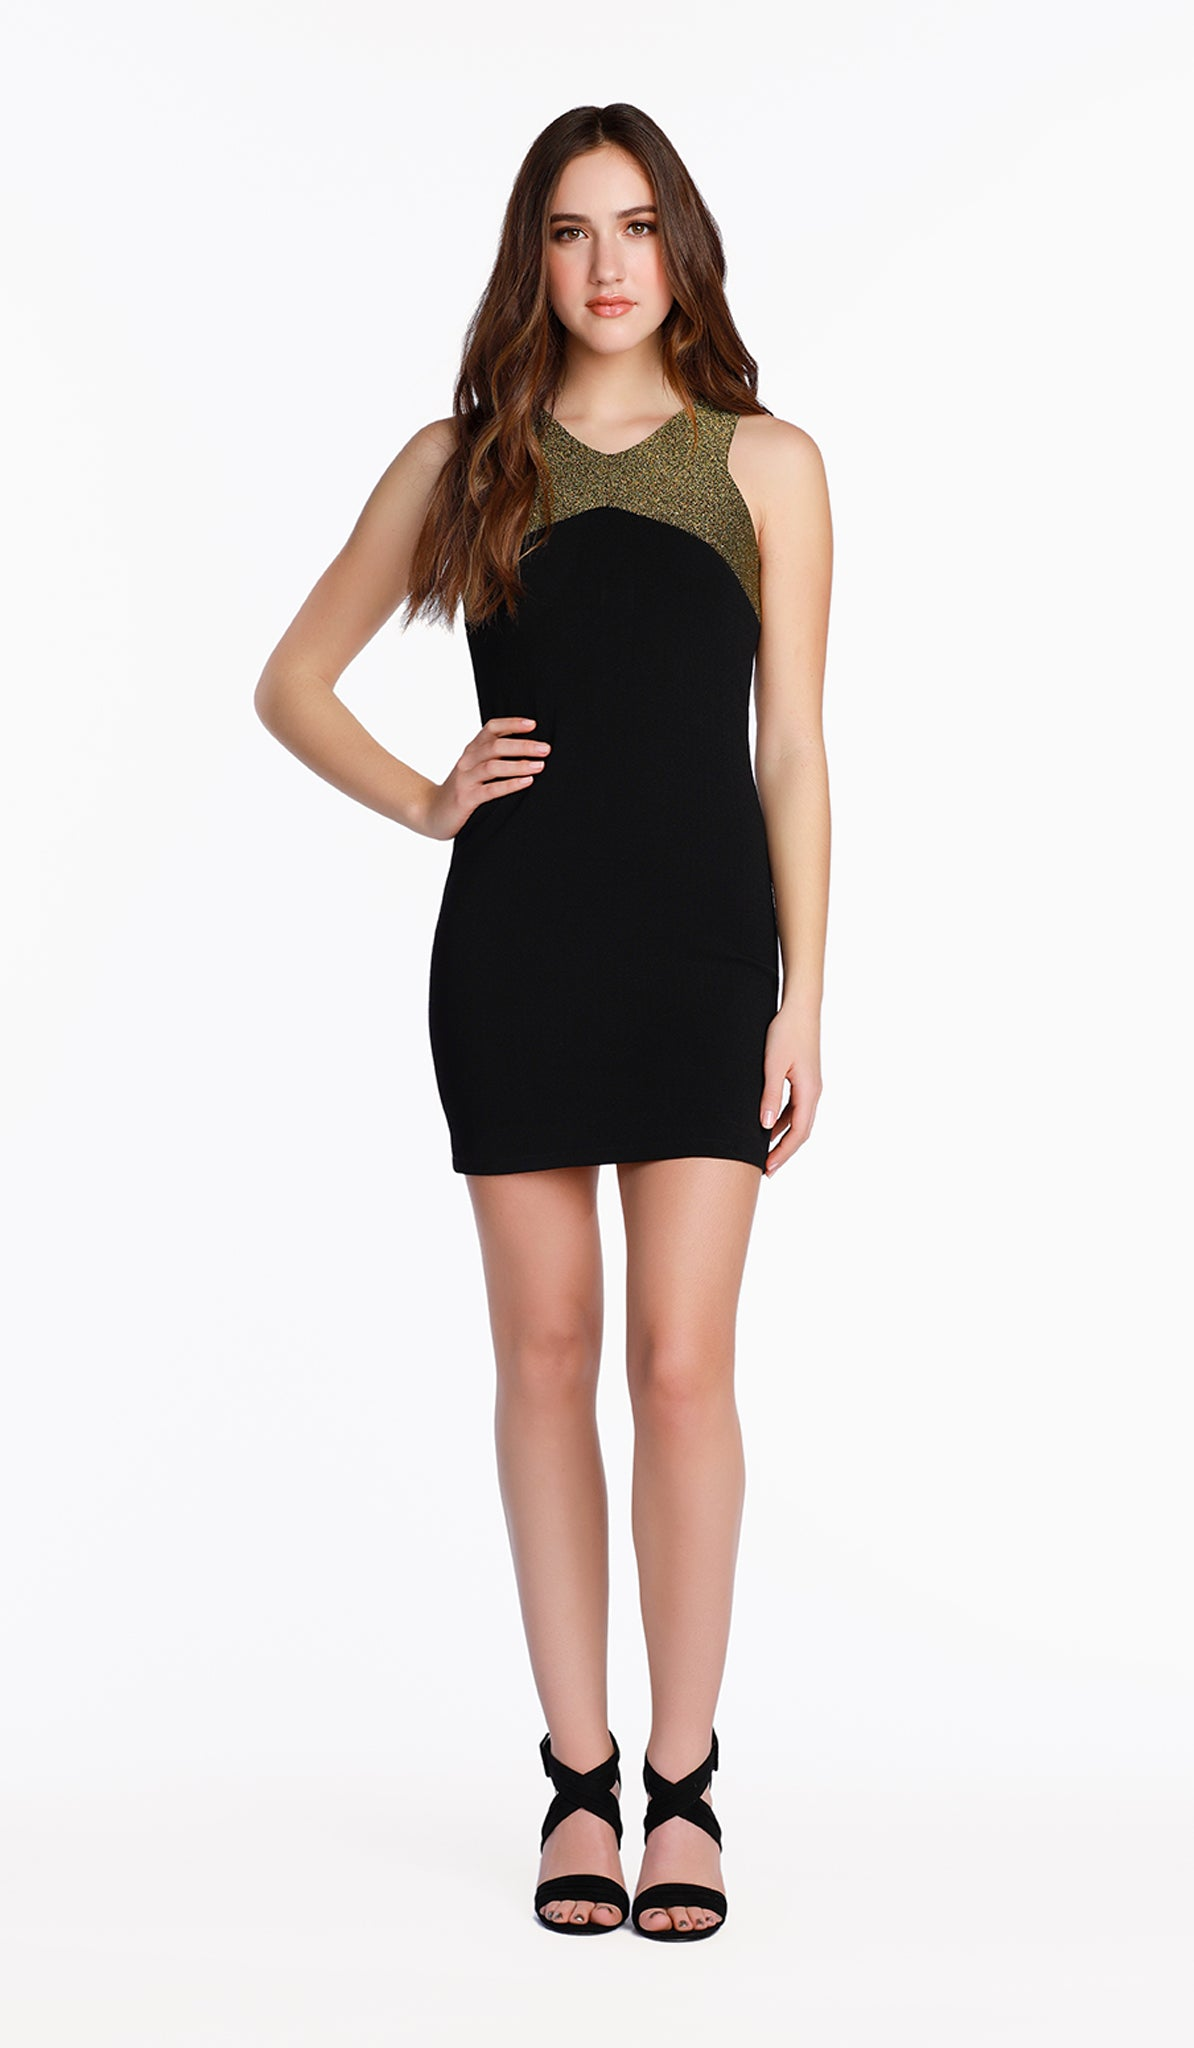 THE JULES DRESS (JUNIORS) - Sallymiller.com - [variant title] - | Event & Party Dresses for Tween Girls & Juniors | Weddings Dresses, Bat Mitzvah Dresses, Sweet Sixteen Dresses, Graduation Dresses, Birthday Party Dresses, Bar Mitzvah Dresses, Cotillion Dresses